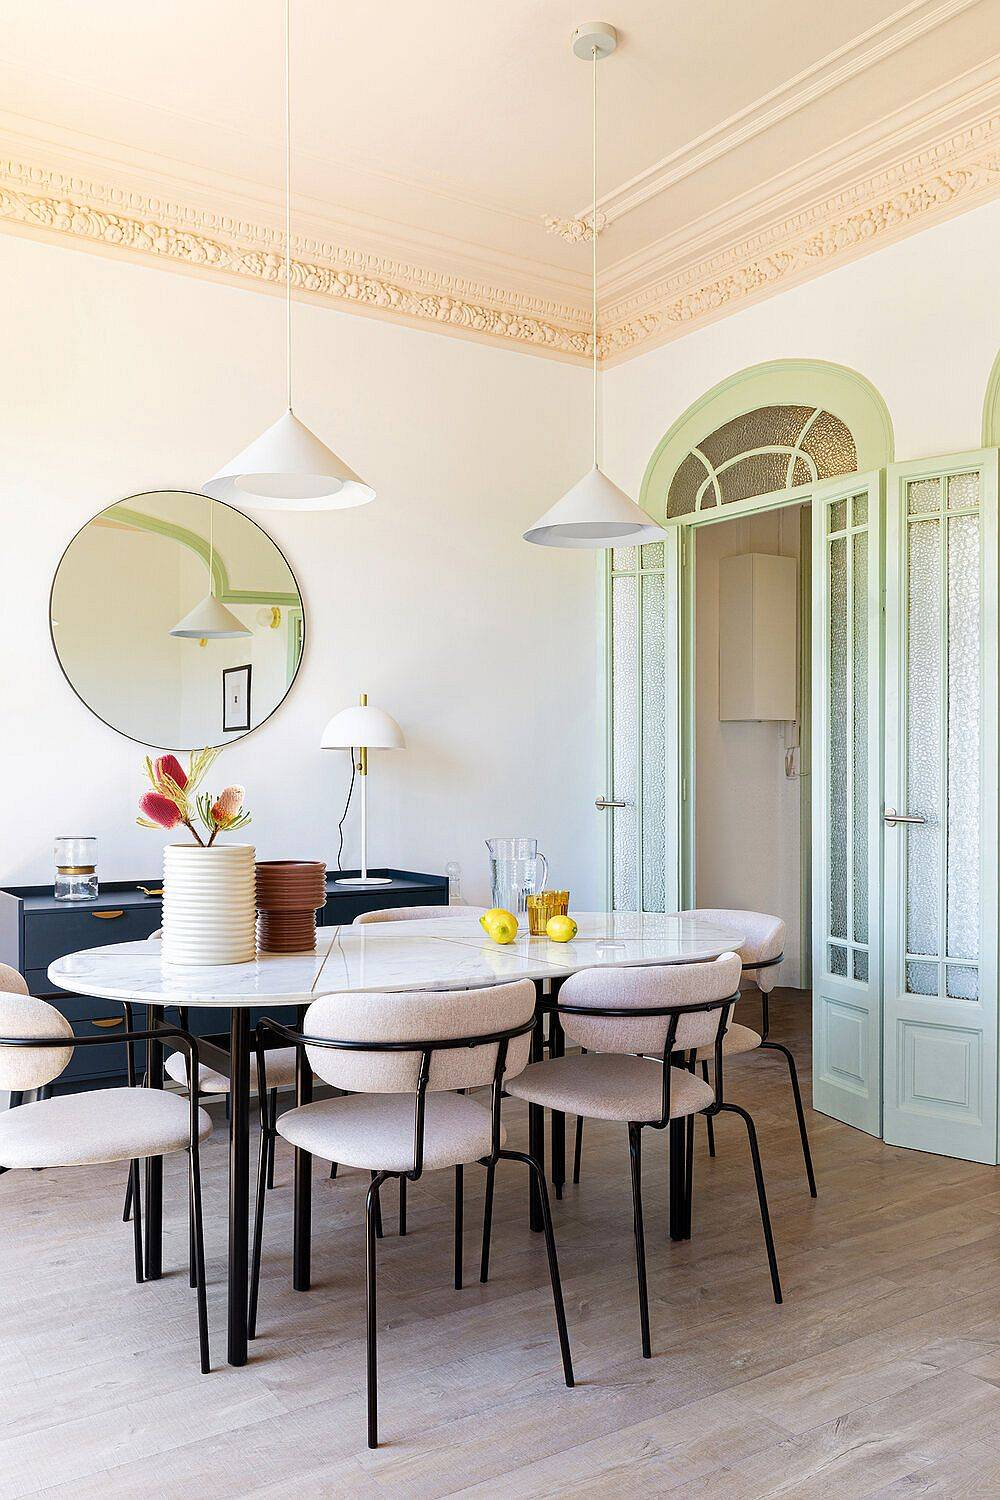 Lovely-and-classic-crown-moulding-of-the-room-is-carefully-combined-with-modern-decor-23216